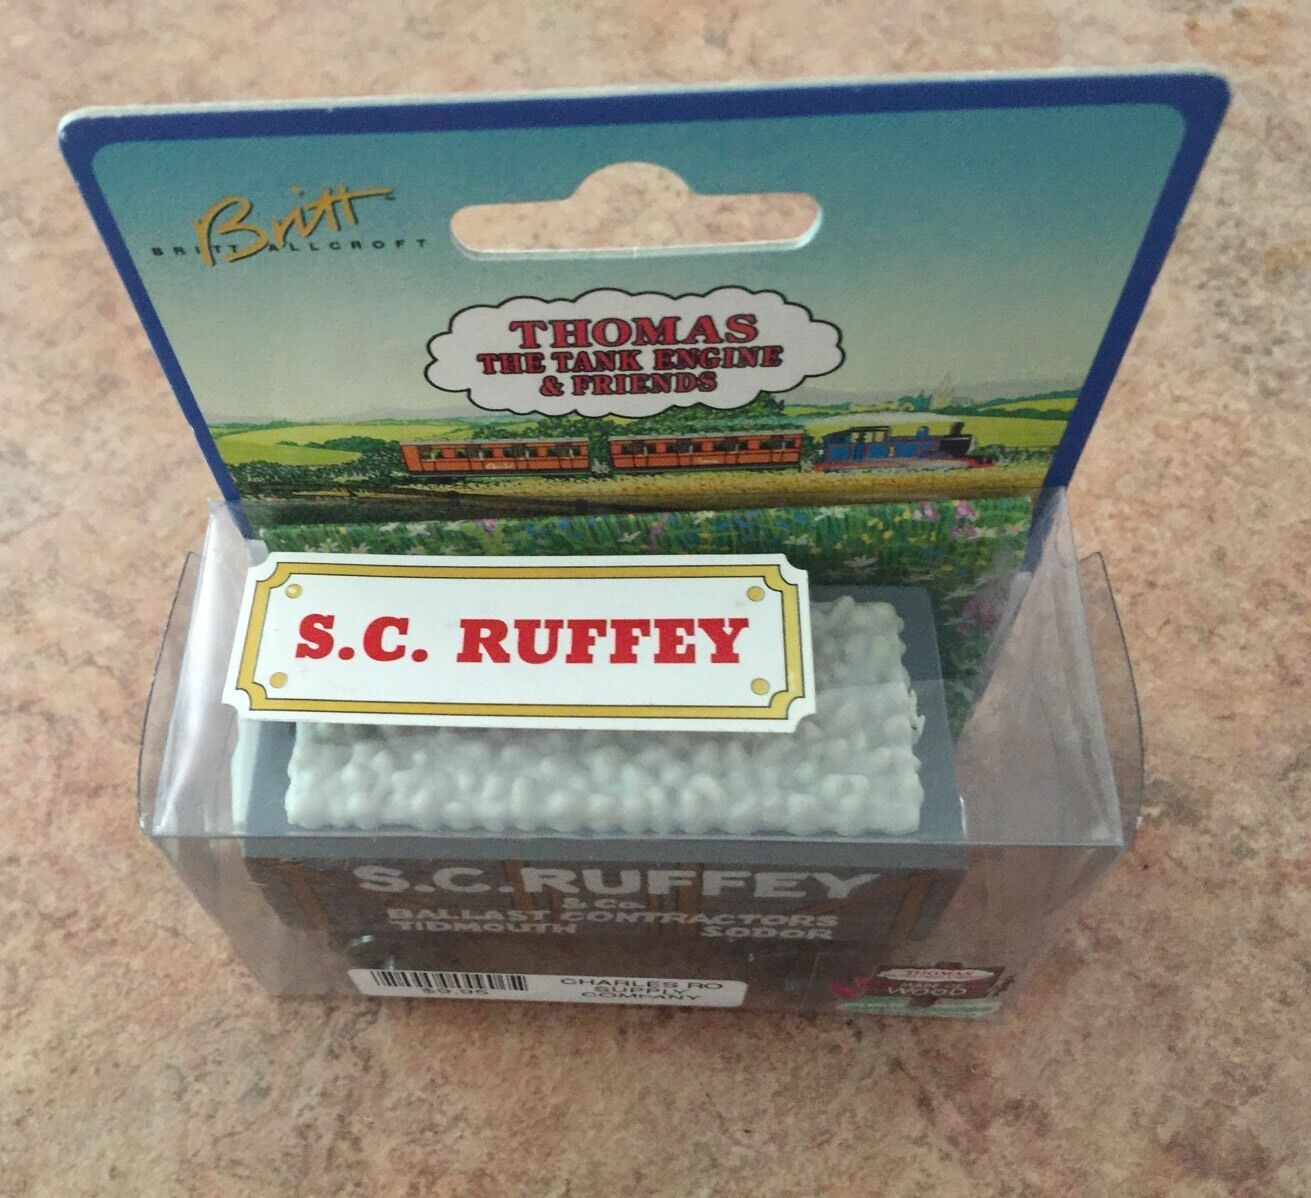 1996 Authentic Weiß Label Wooden Thomas Train 1st Issue S C Ruffey  NIB